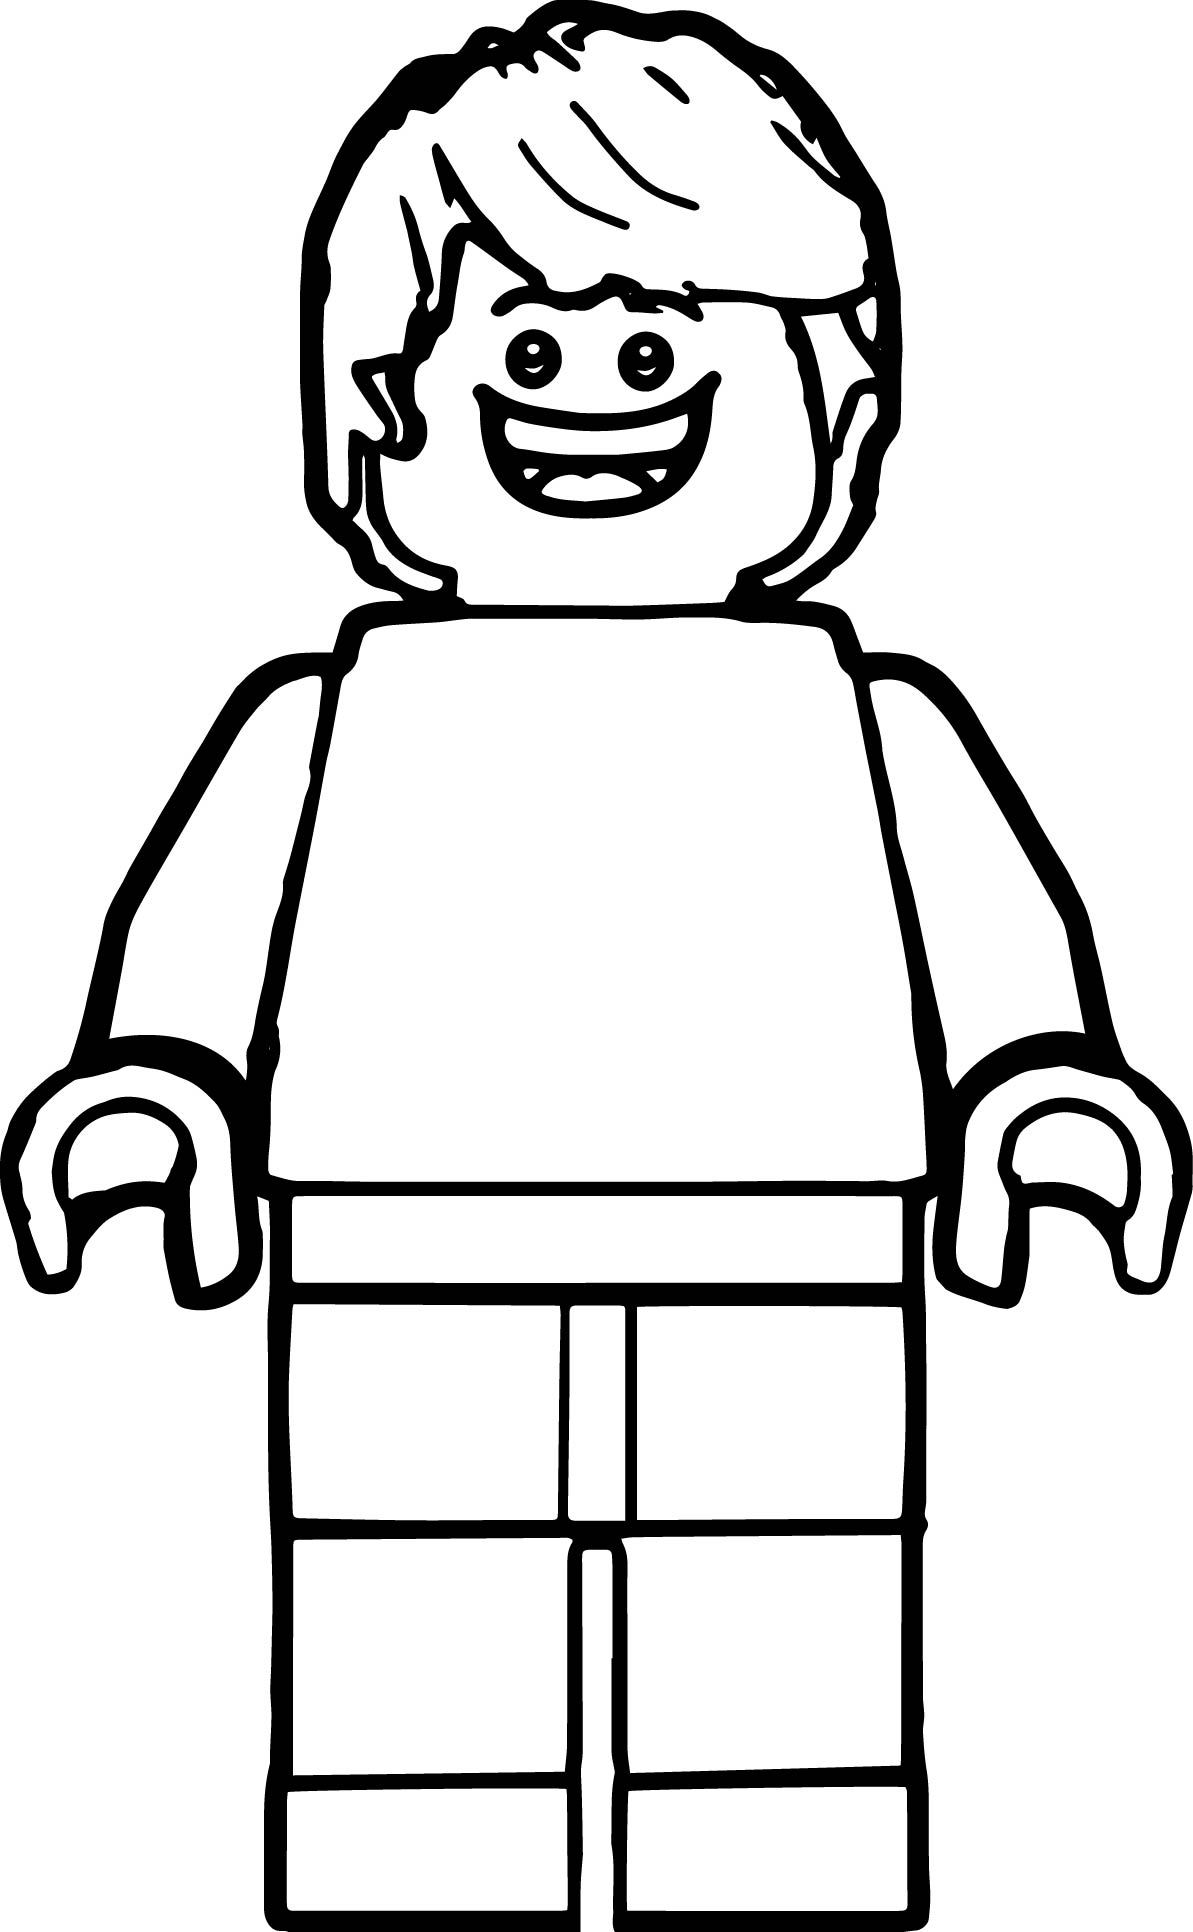 make your own coloring pages from photos - lego man coloring page